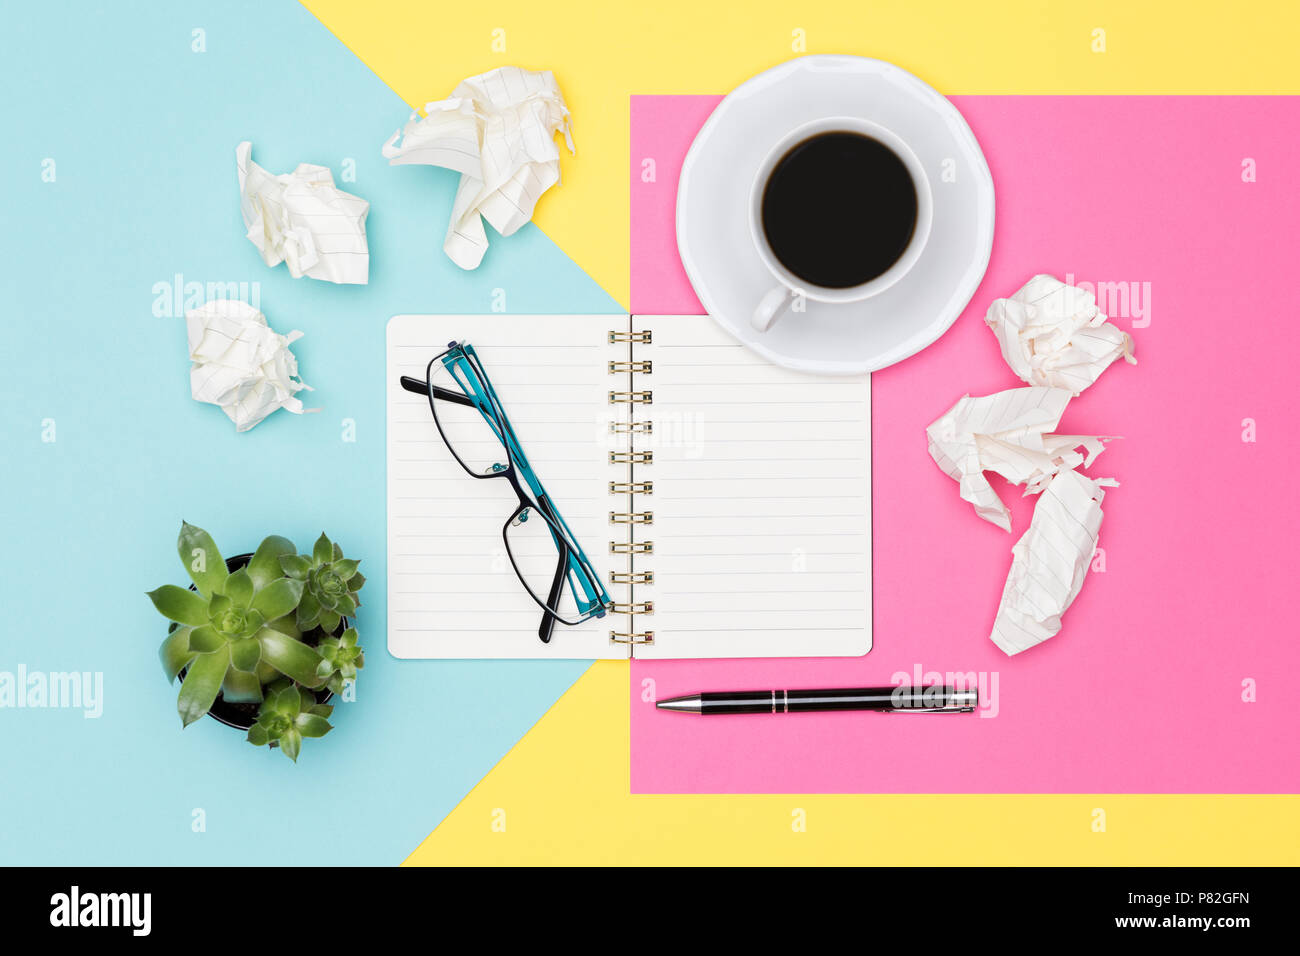 Writer's block. Ideas, brainstorming, creativity, deadline, frustration concept. Top view photo of office desk with blank mock up open note pad. - Stock Image